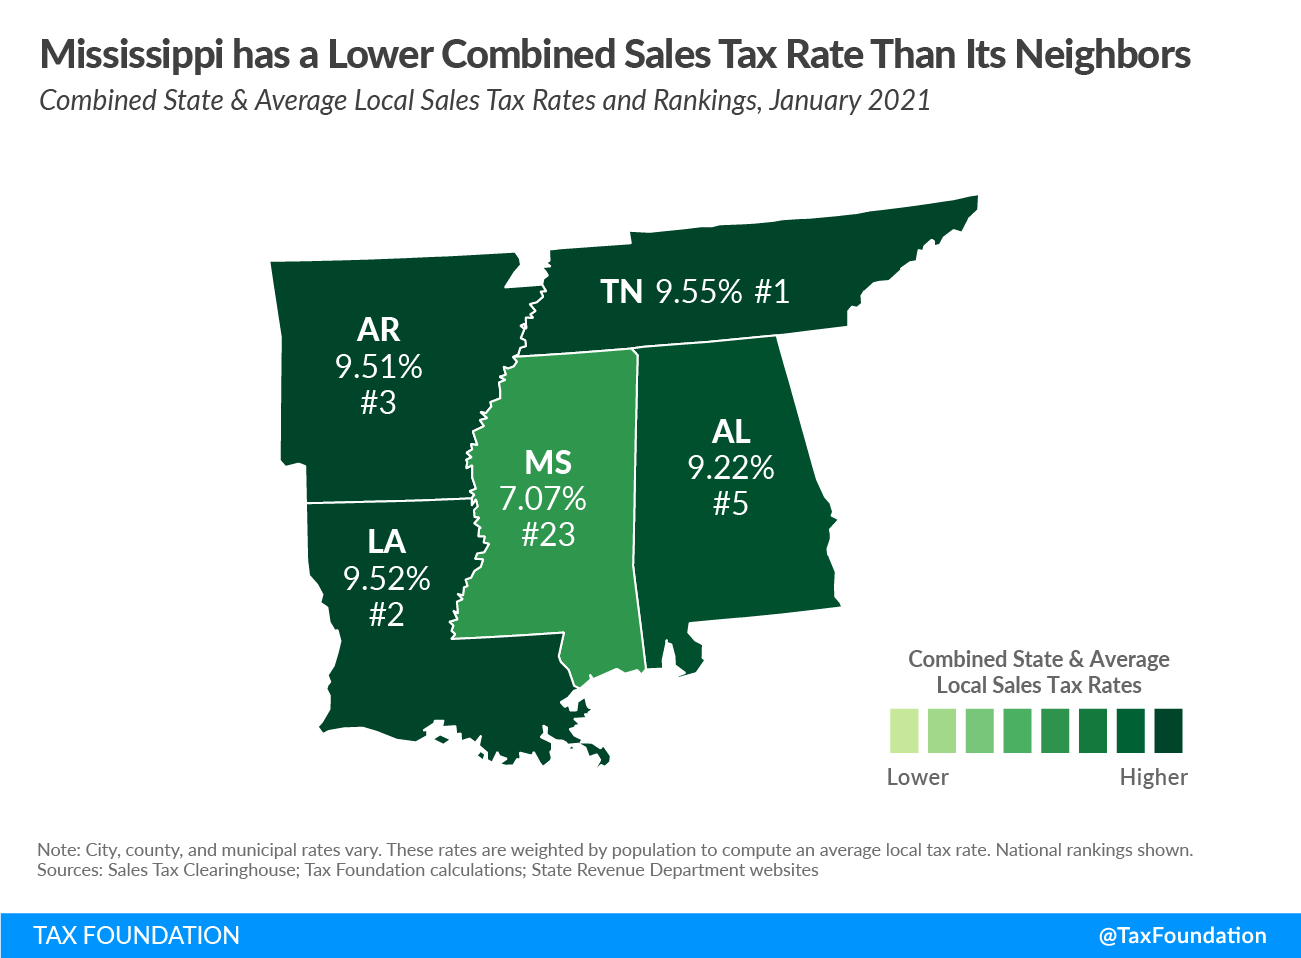 Mississippi sales tax rates compared regionally Mississippi income tax reform proposal to eliminate the income tax in Mississippi 2021 Mississippi income tax phaseout